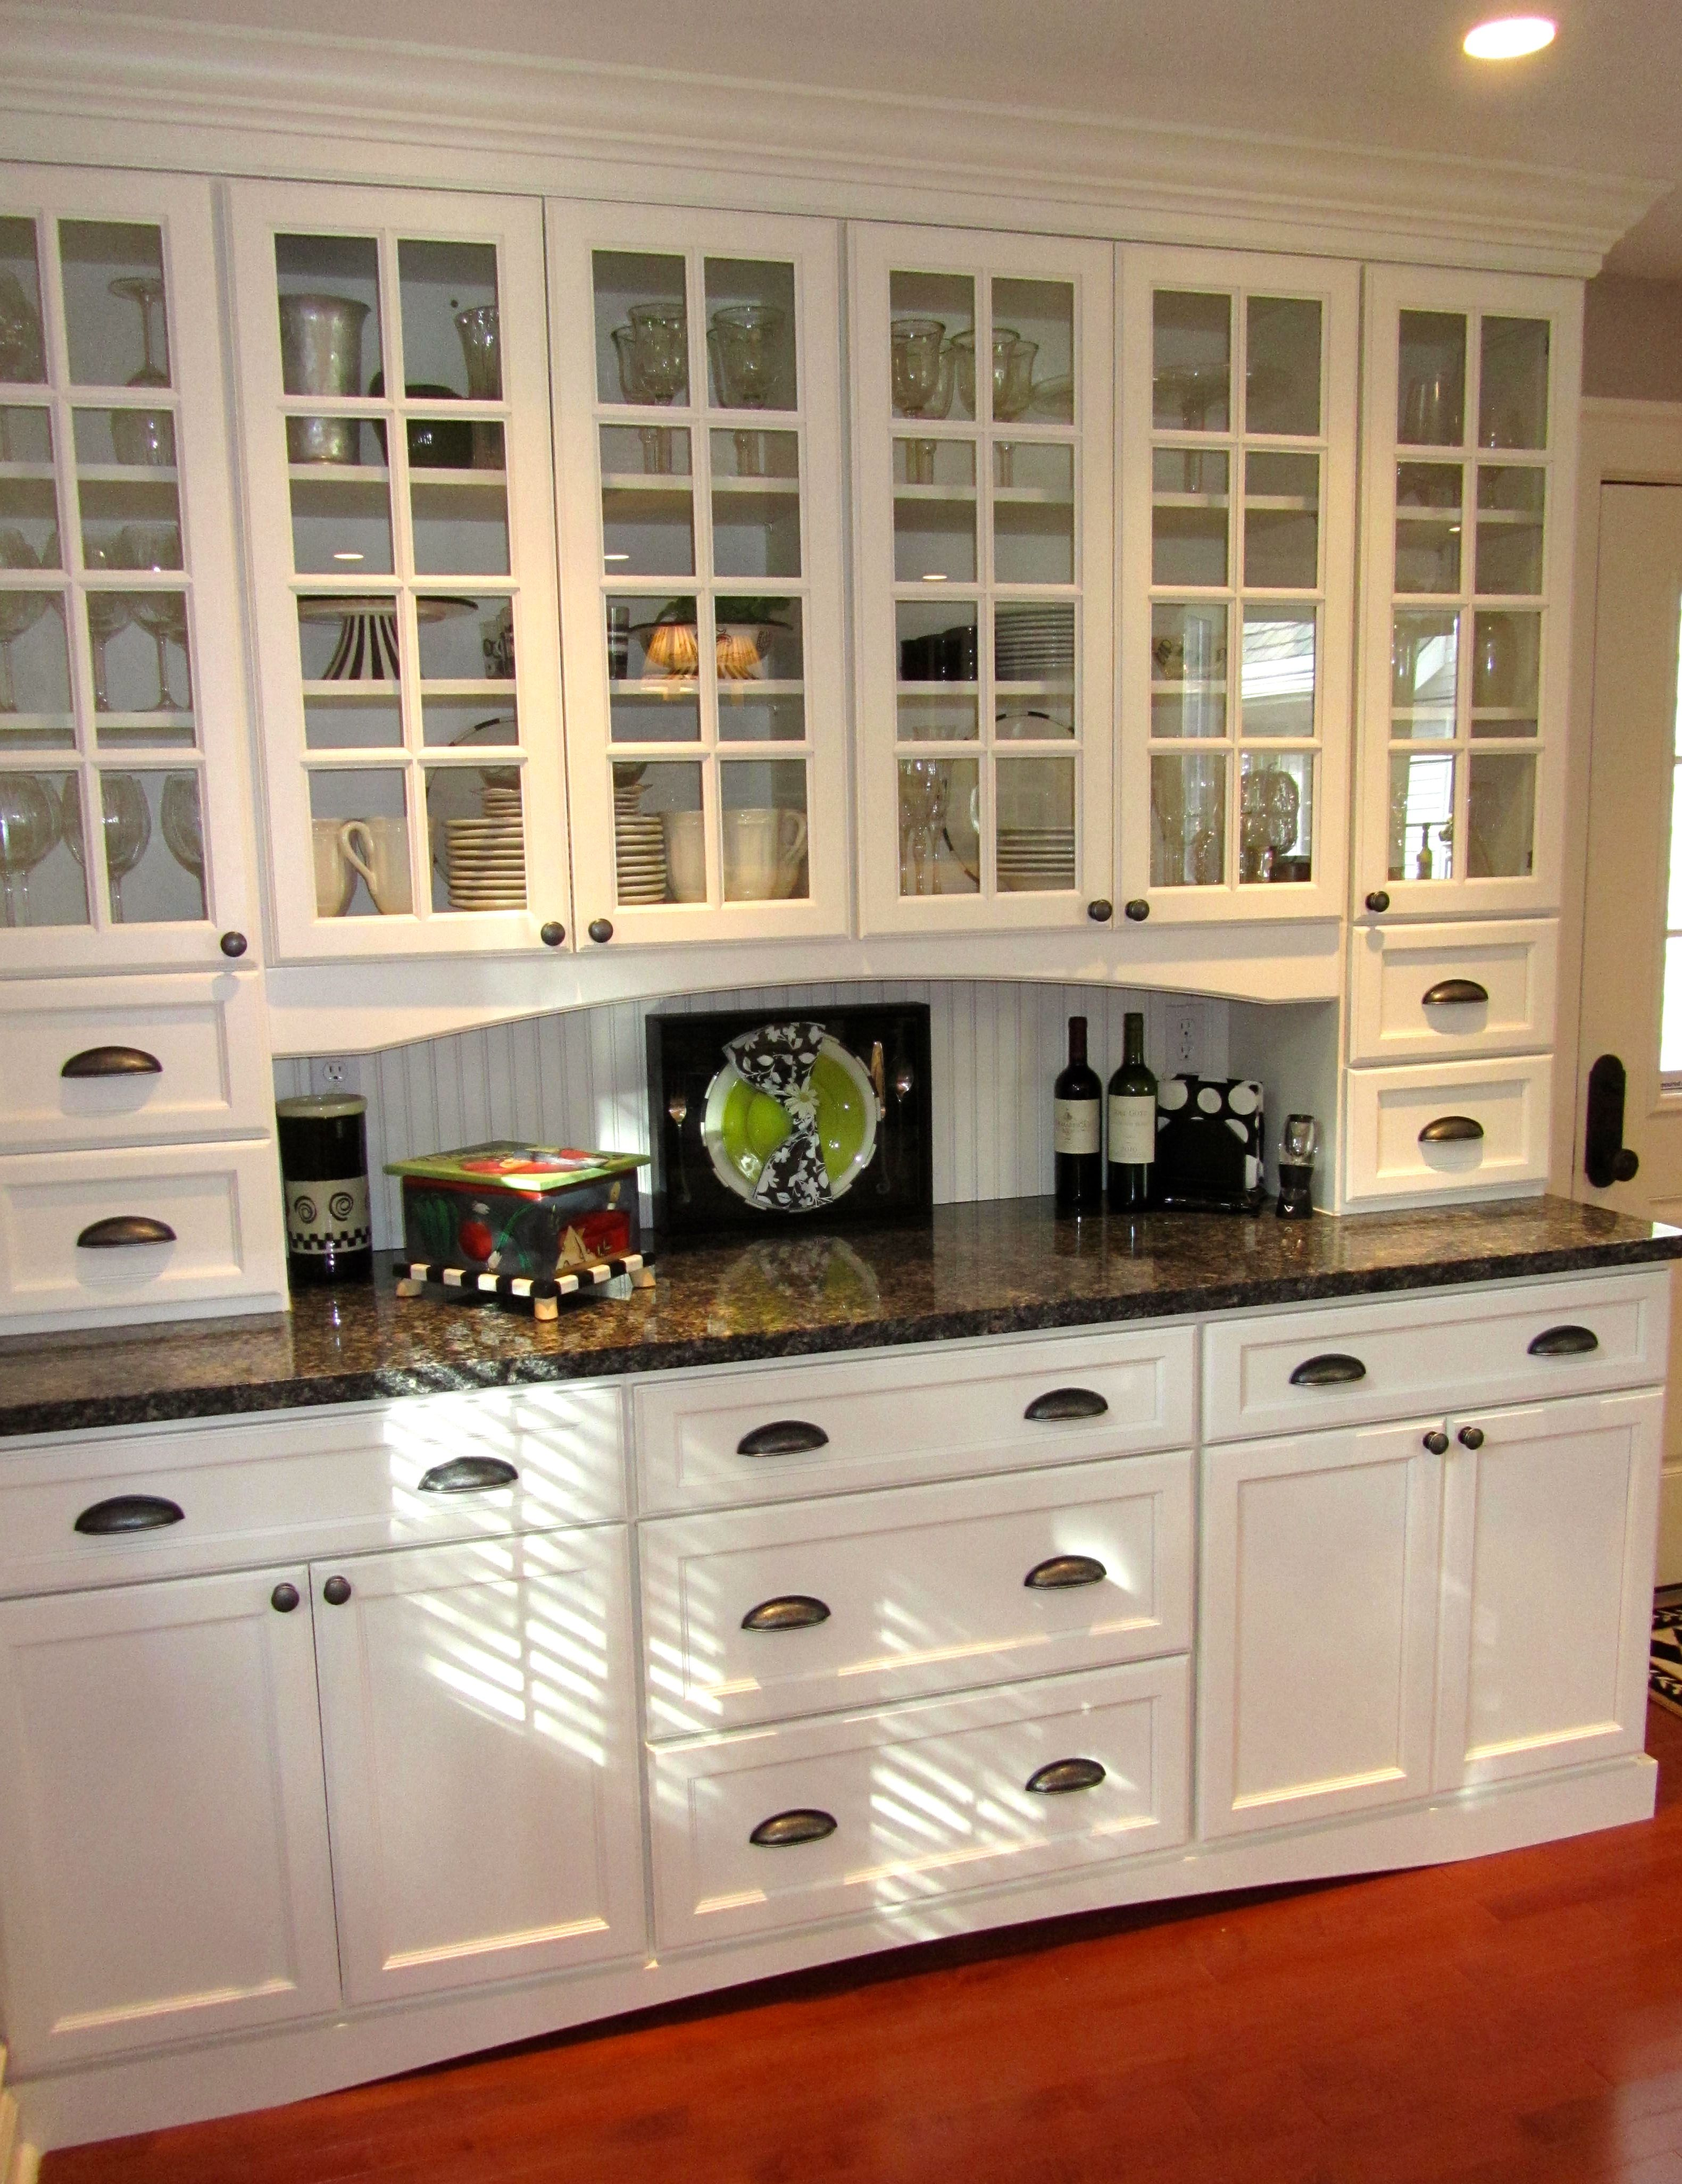 Room By Room The Kitchen Home Kitchens Kitchen Design Pantry